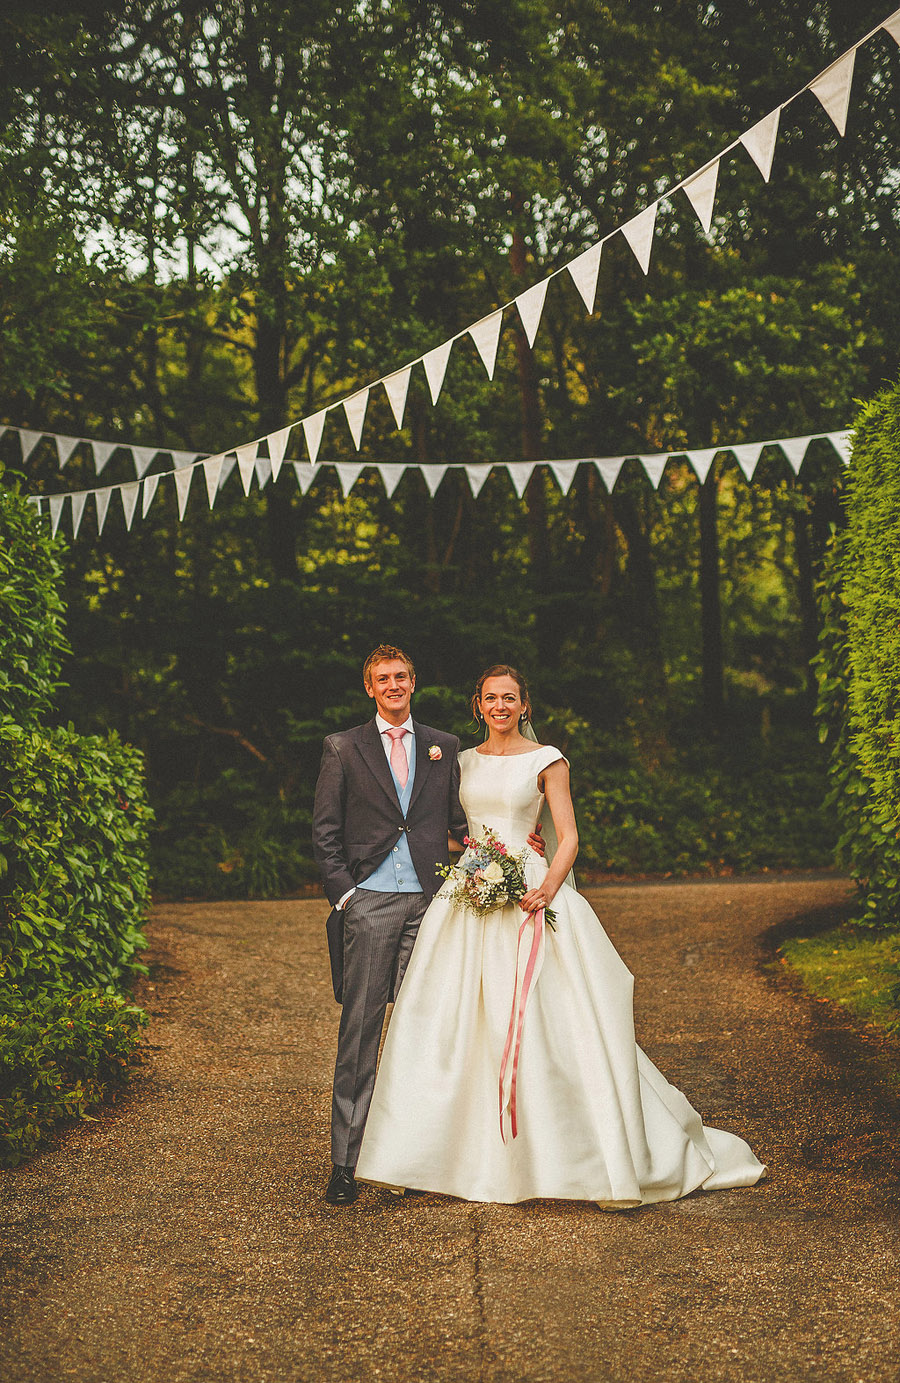 Summer fete wedding style from beautiful Somerset. Images by Somerset wedding photographer Howell Jones Photography (44)